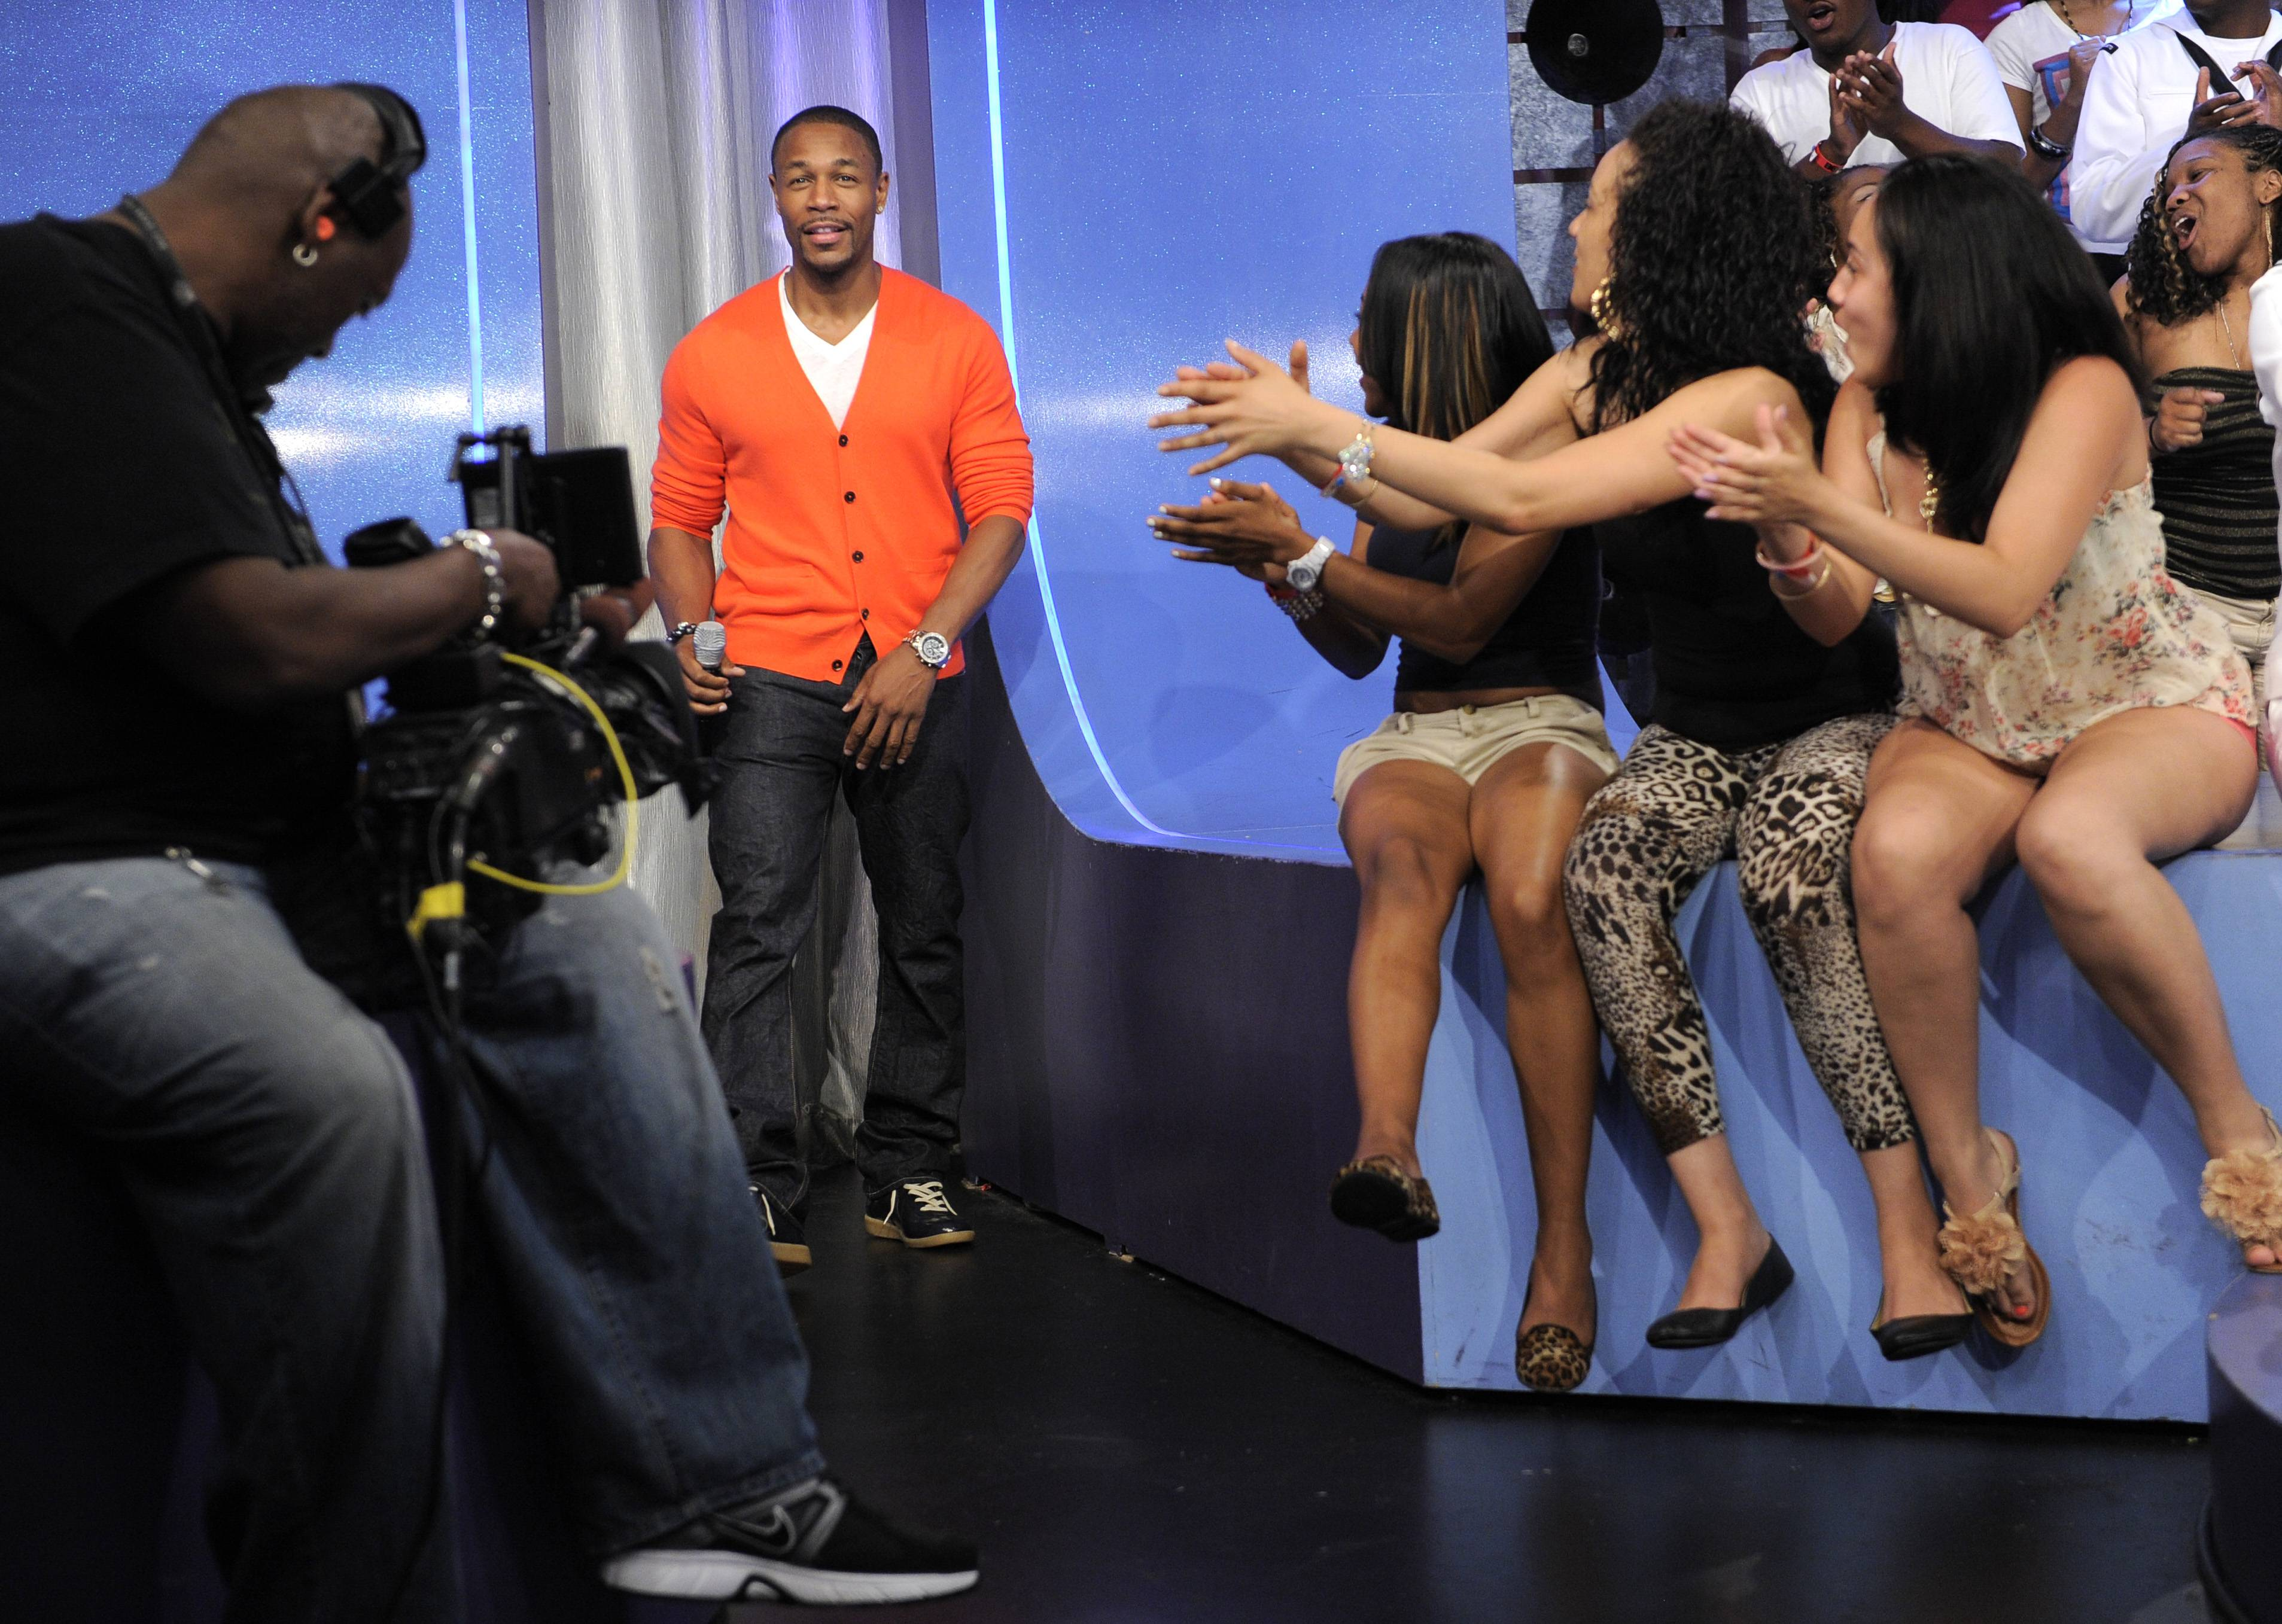 We Love Tank - Tank takes the stage at 106 & Park, May 29, 2012. (Photo: John Ricard / BET)